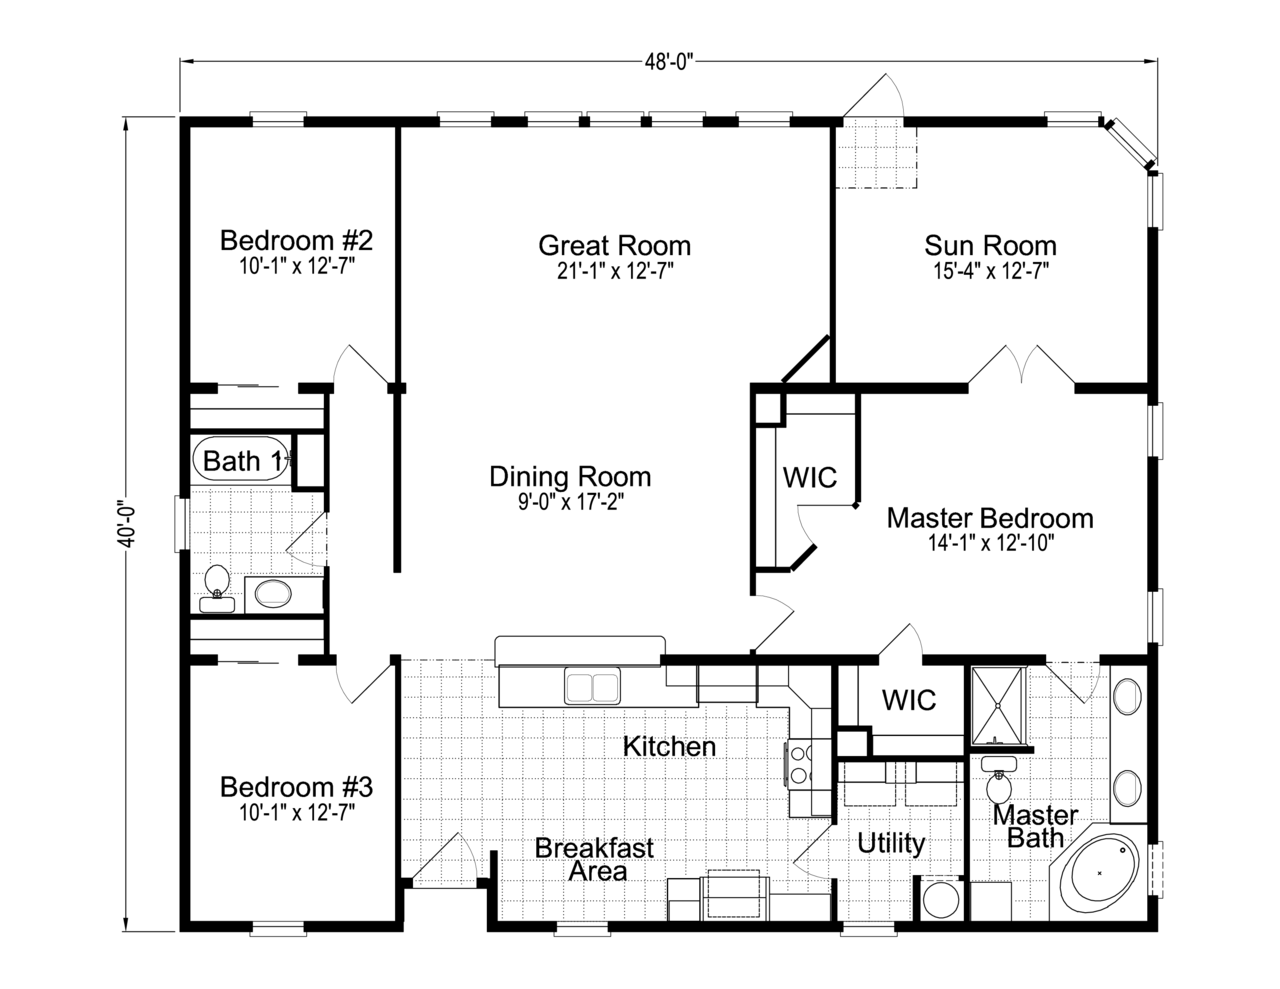 Palm harbor 39 s wellington x348f6 or 40483a is a for 2 bedroom mobile home floor plans